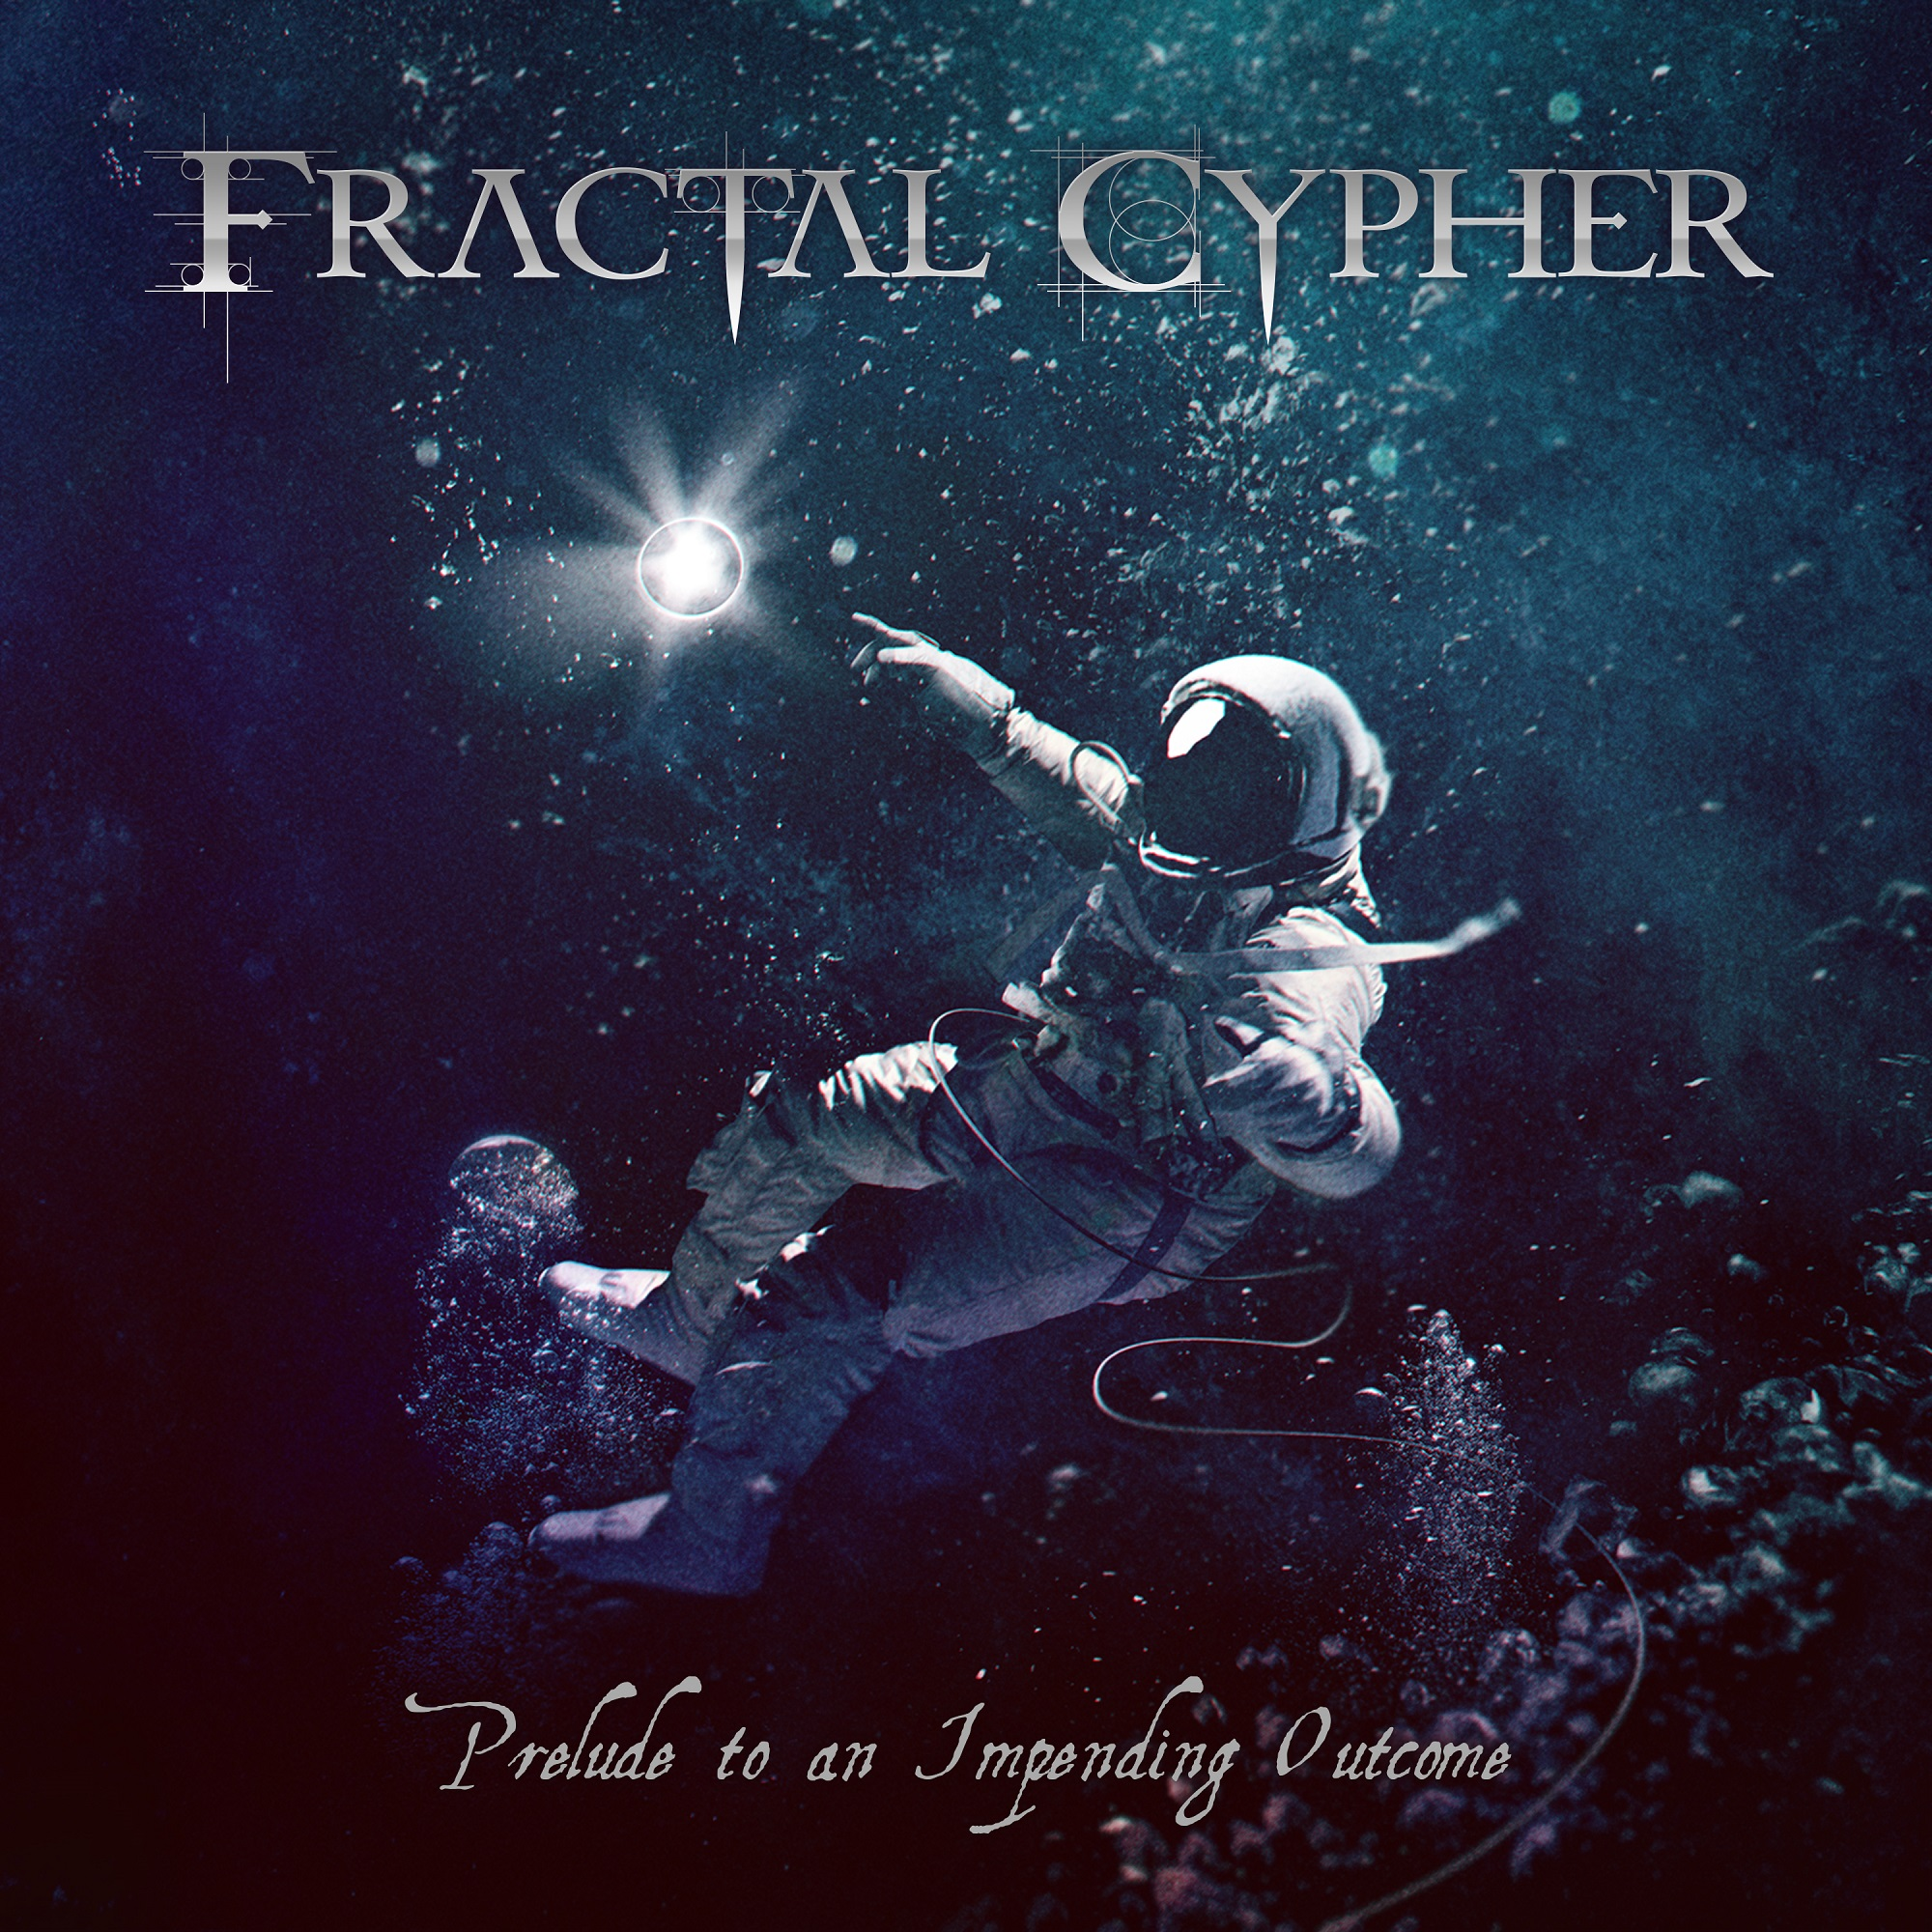 fractal_cypher_album_cover_prelude_to_an_Impending_outcome